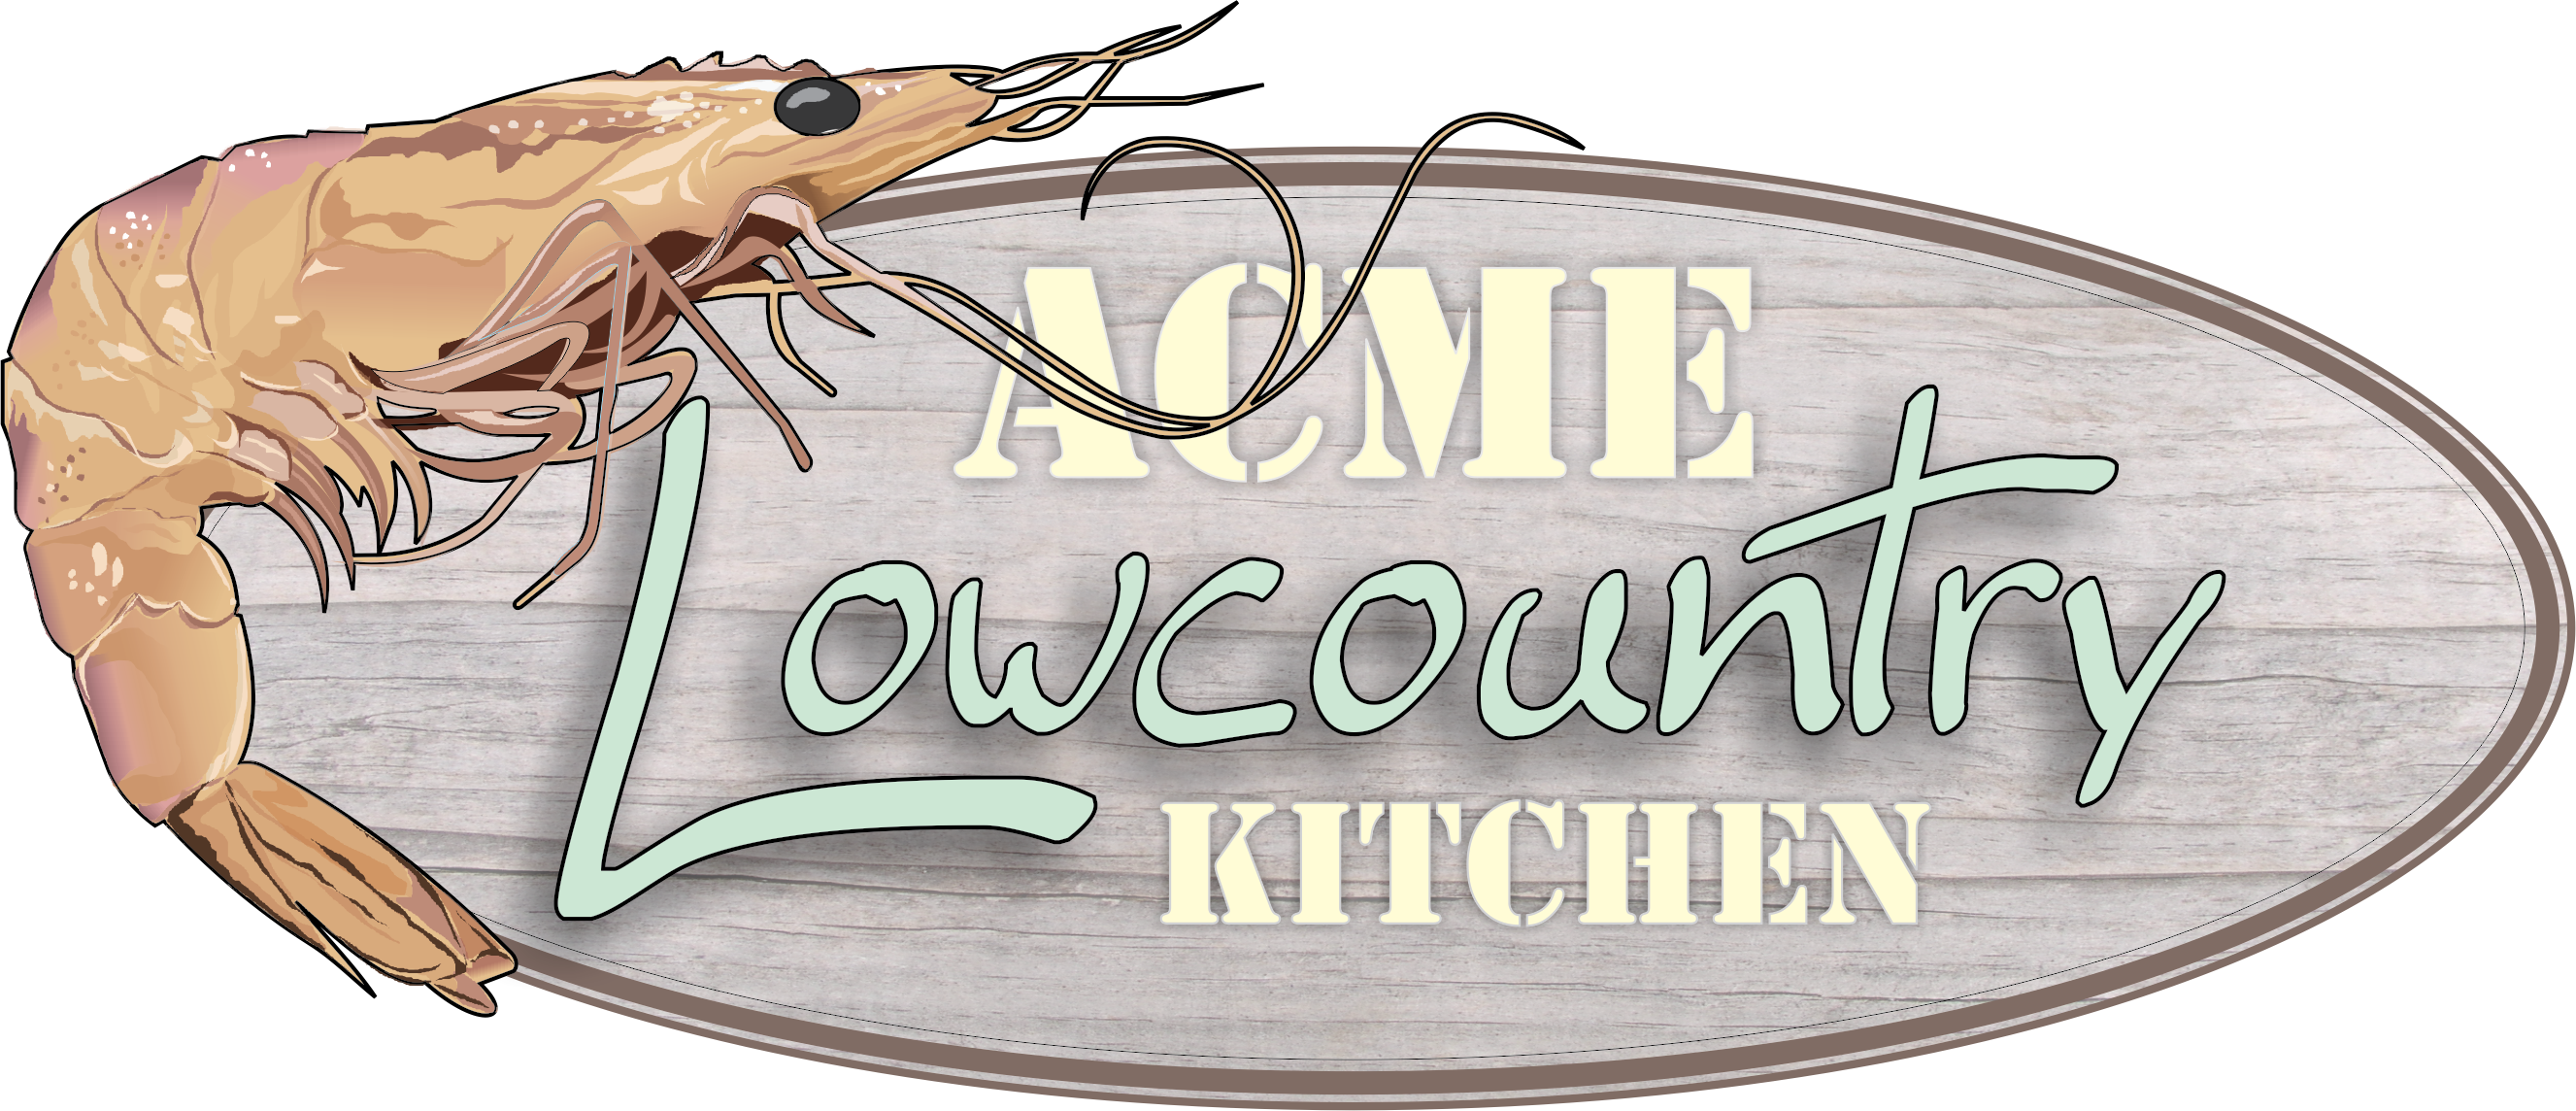 Acme Lowcountry Kitchen | Acme